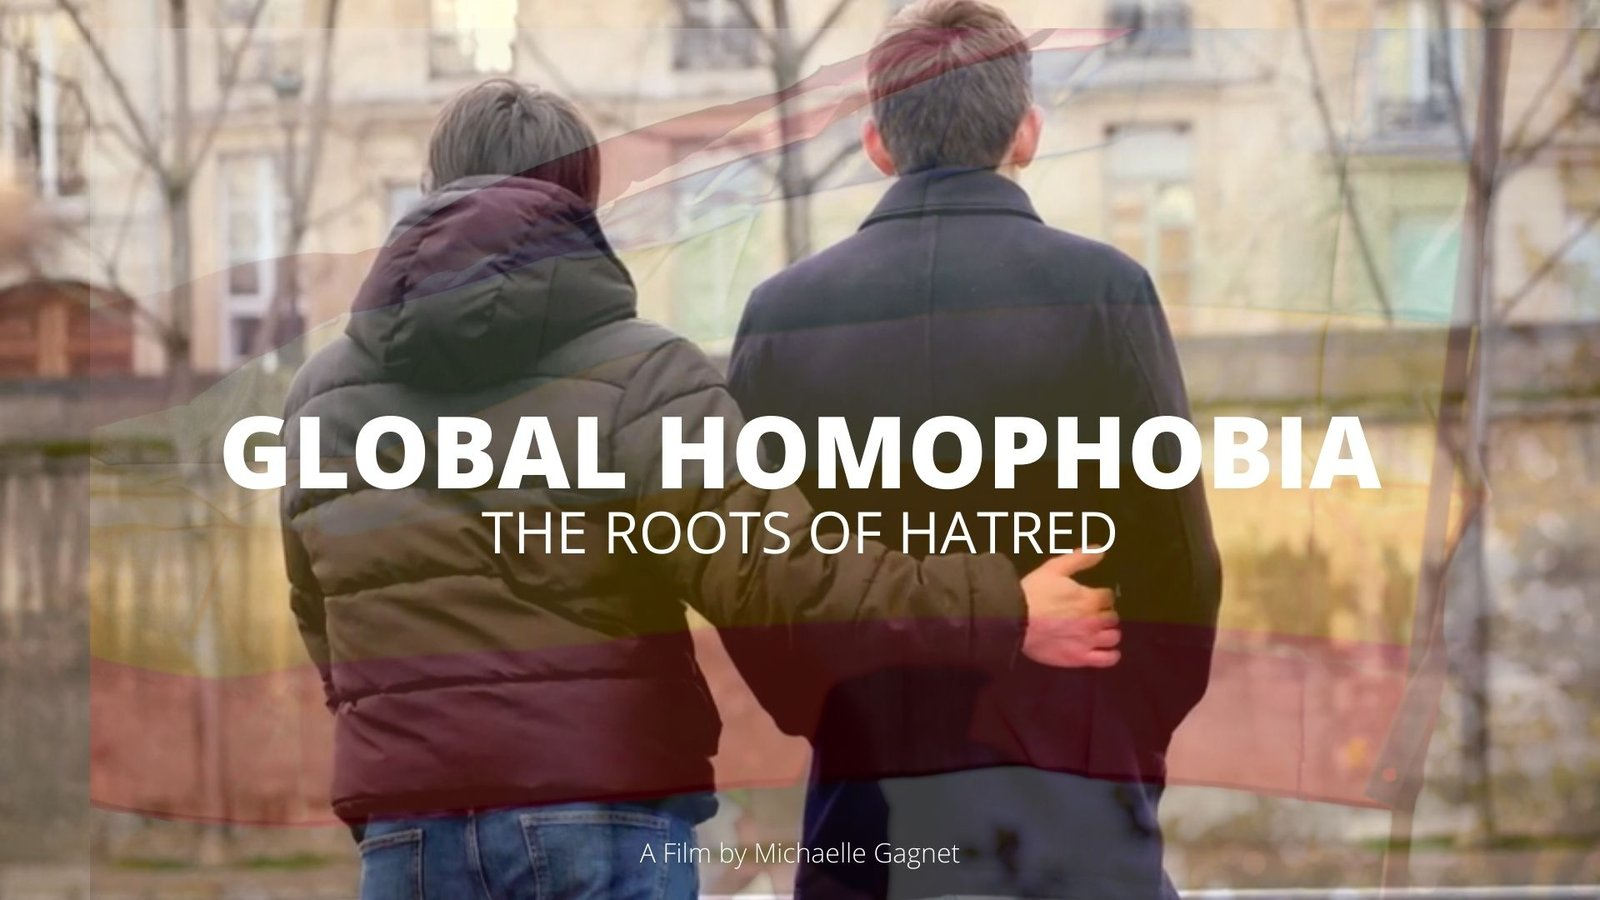 Global Homophobia: The Roots Of Hatred